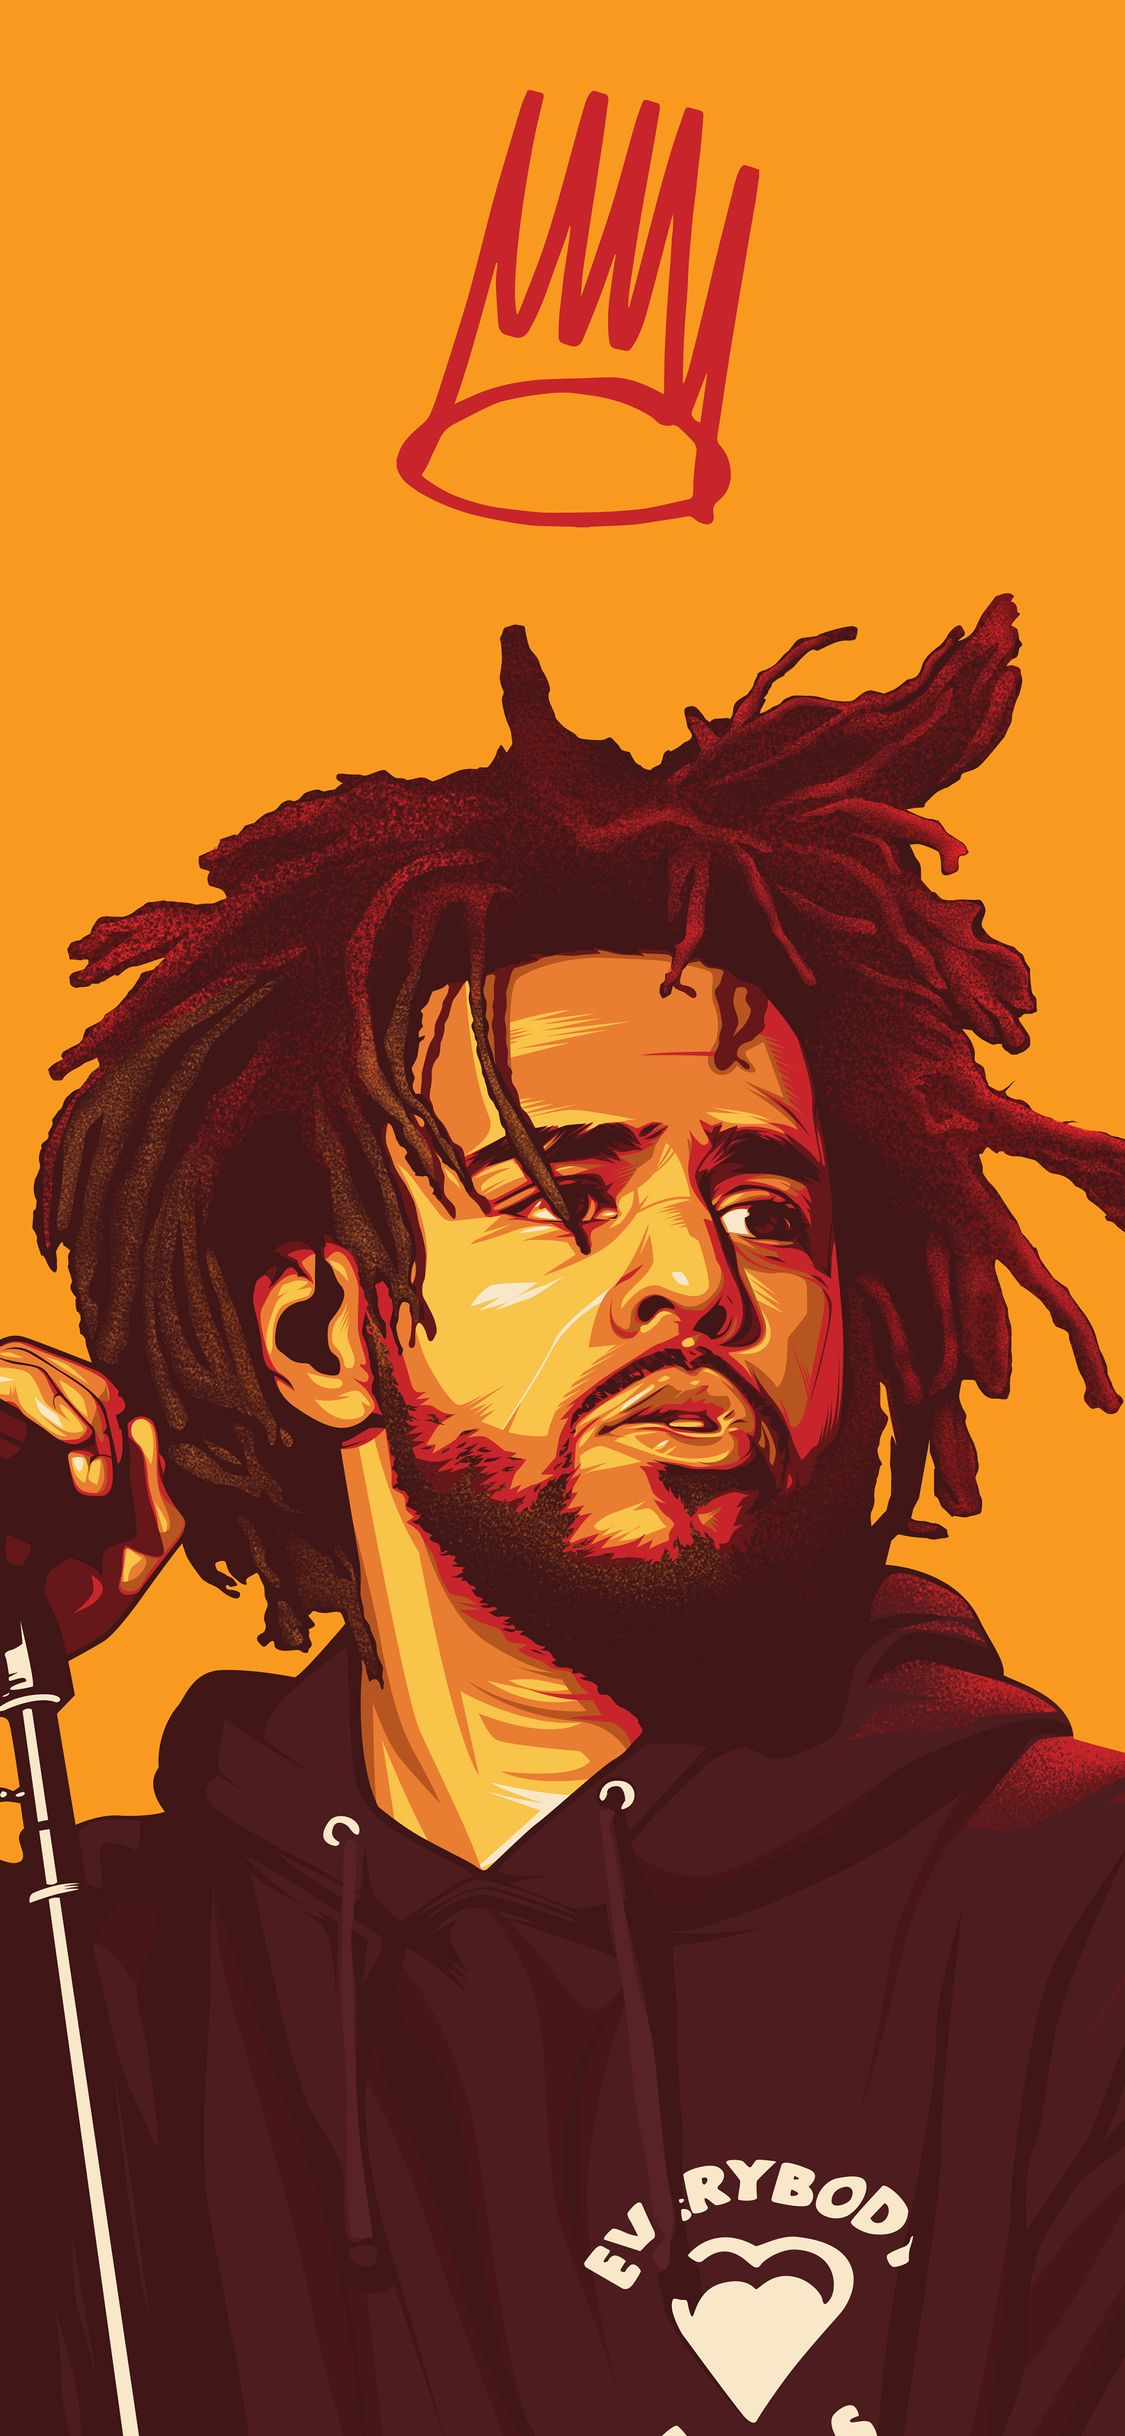 12 Awesome J Cole Iphone Wallpaper Hd In 2020 J Cole Iphone Wallpaper J Cole J Cole Art